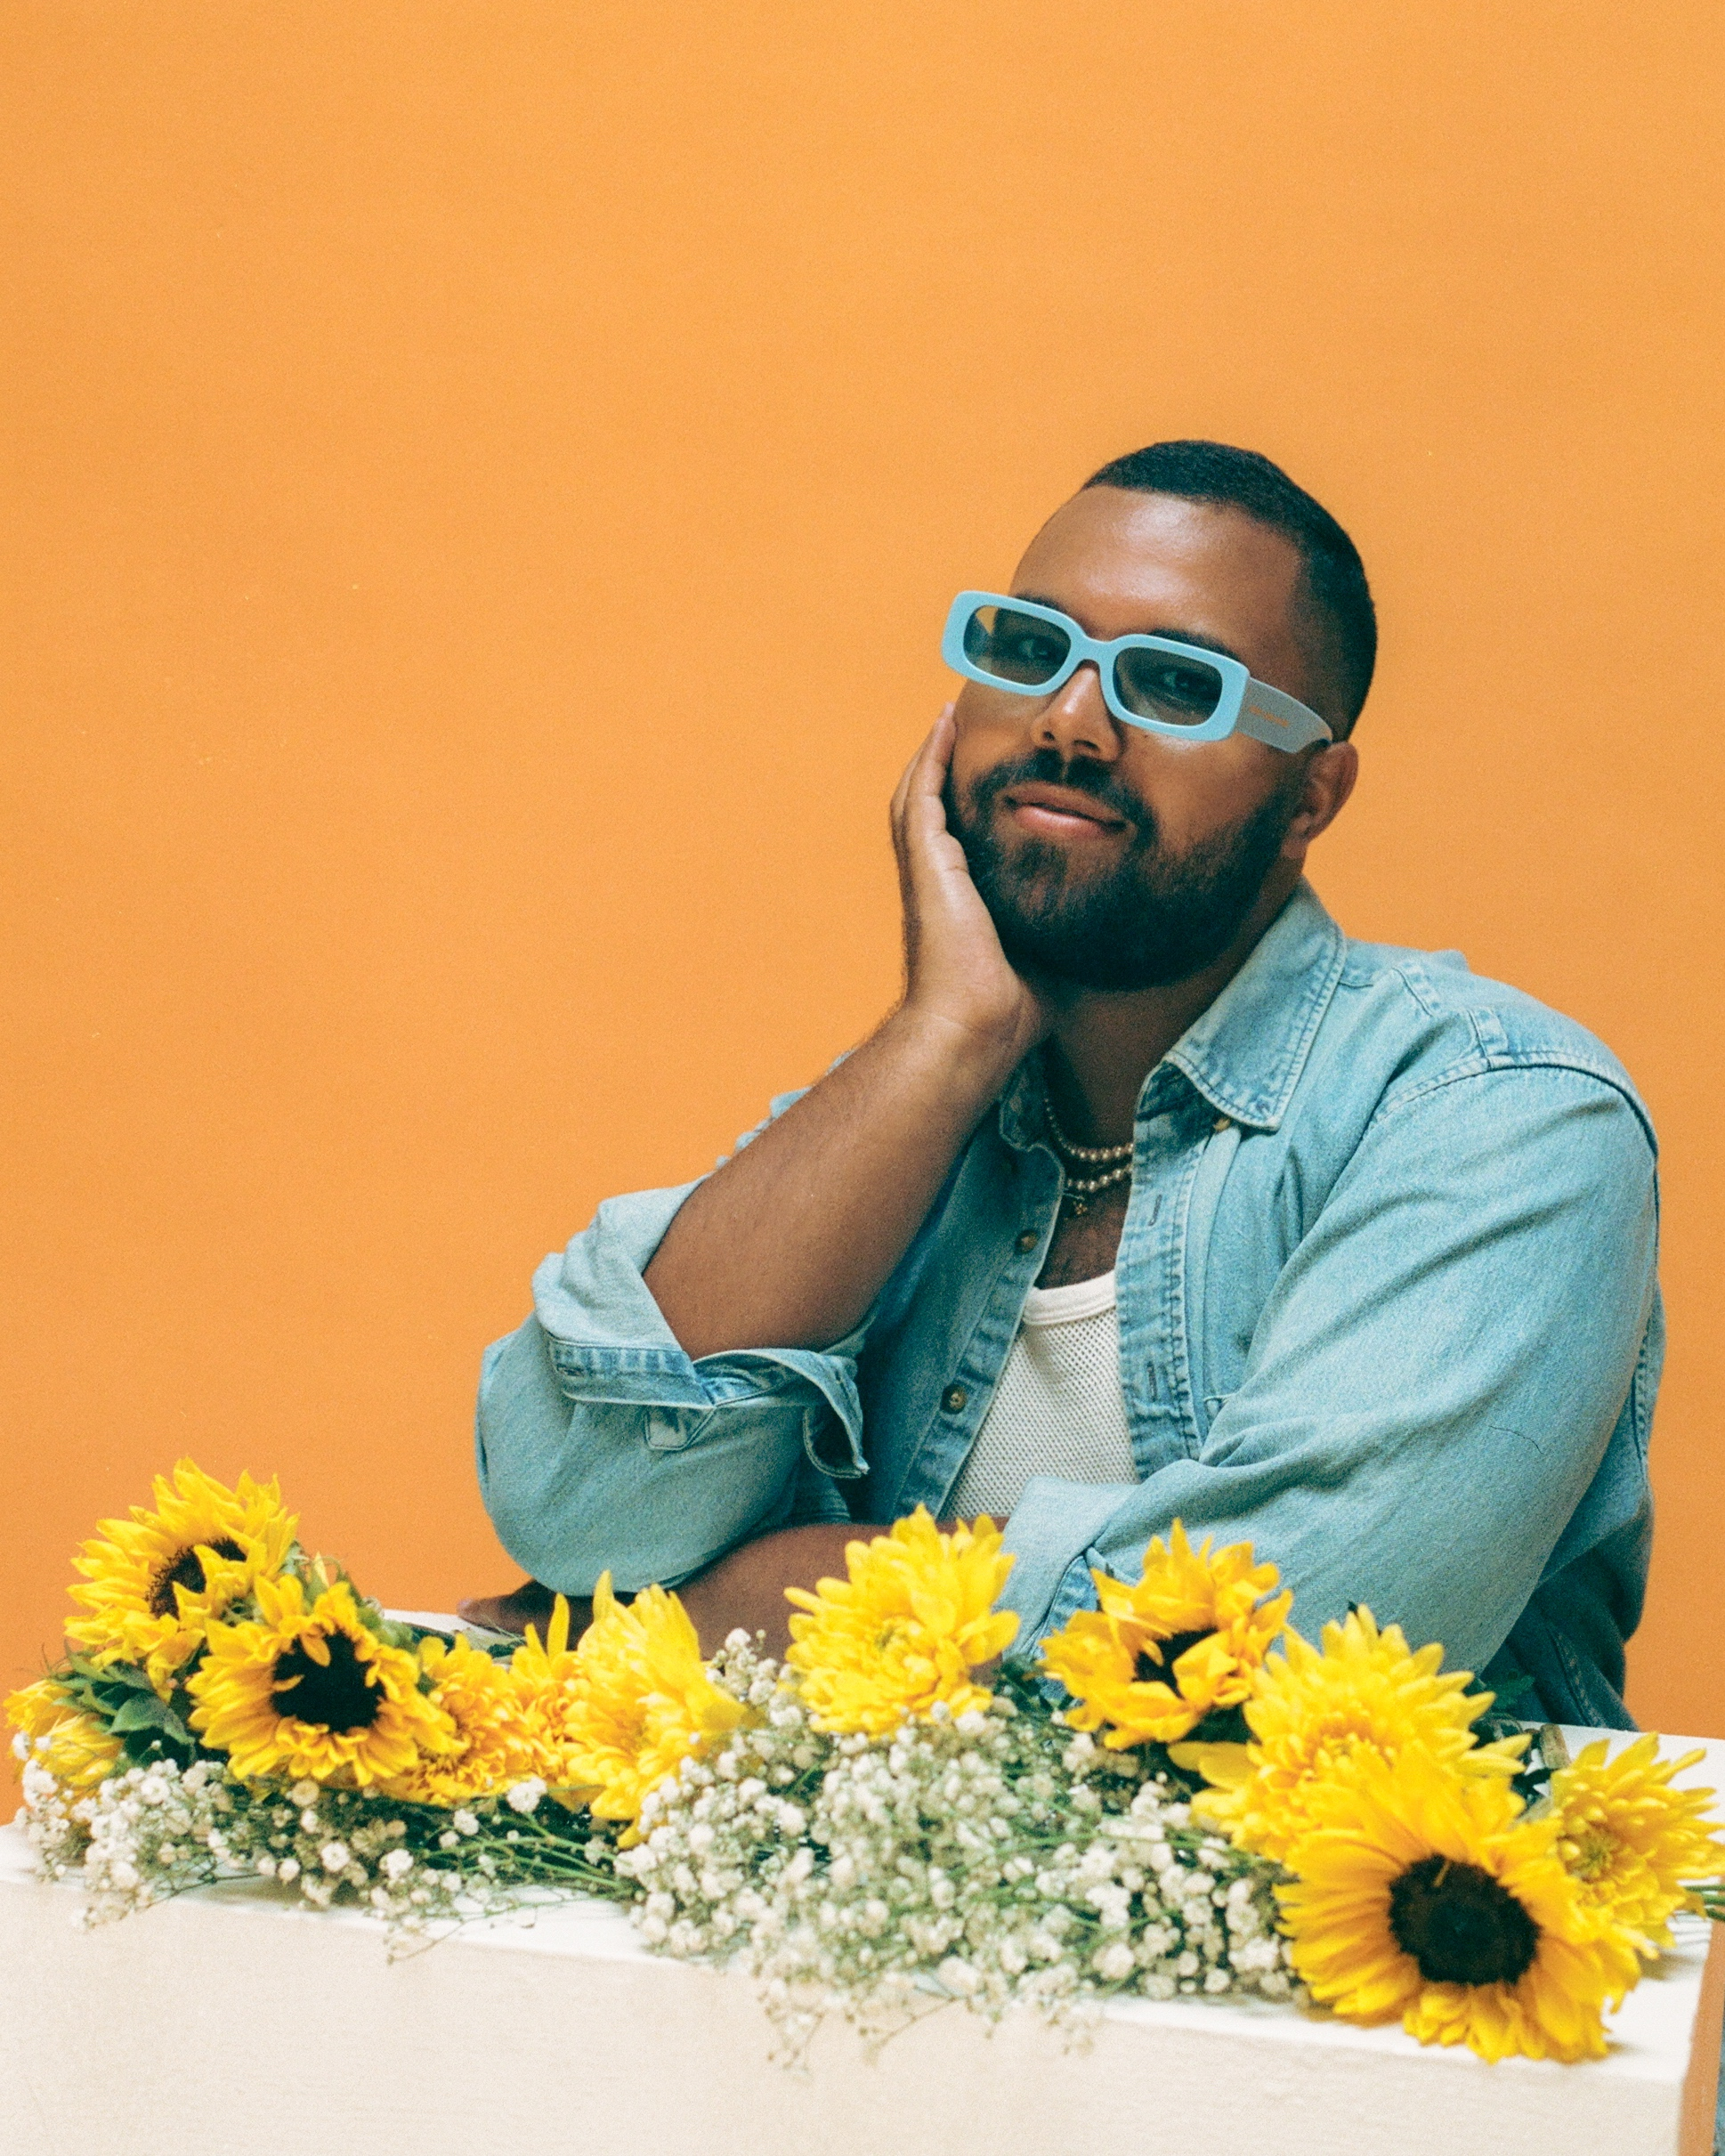 A portrait of Micah wearing sunglasses and holding sunflowers